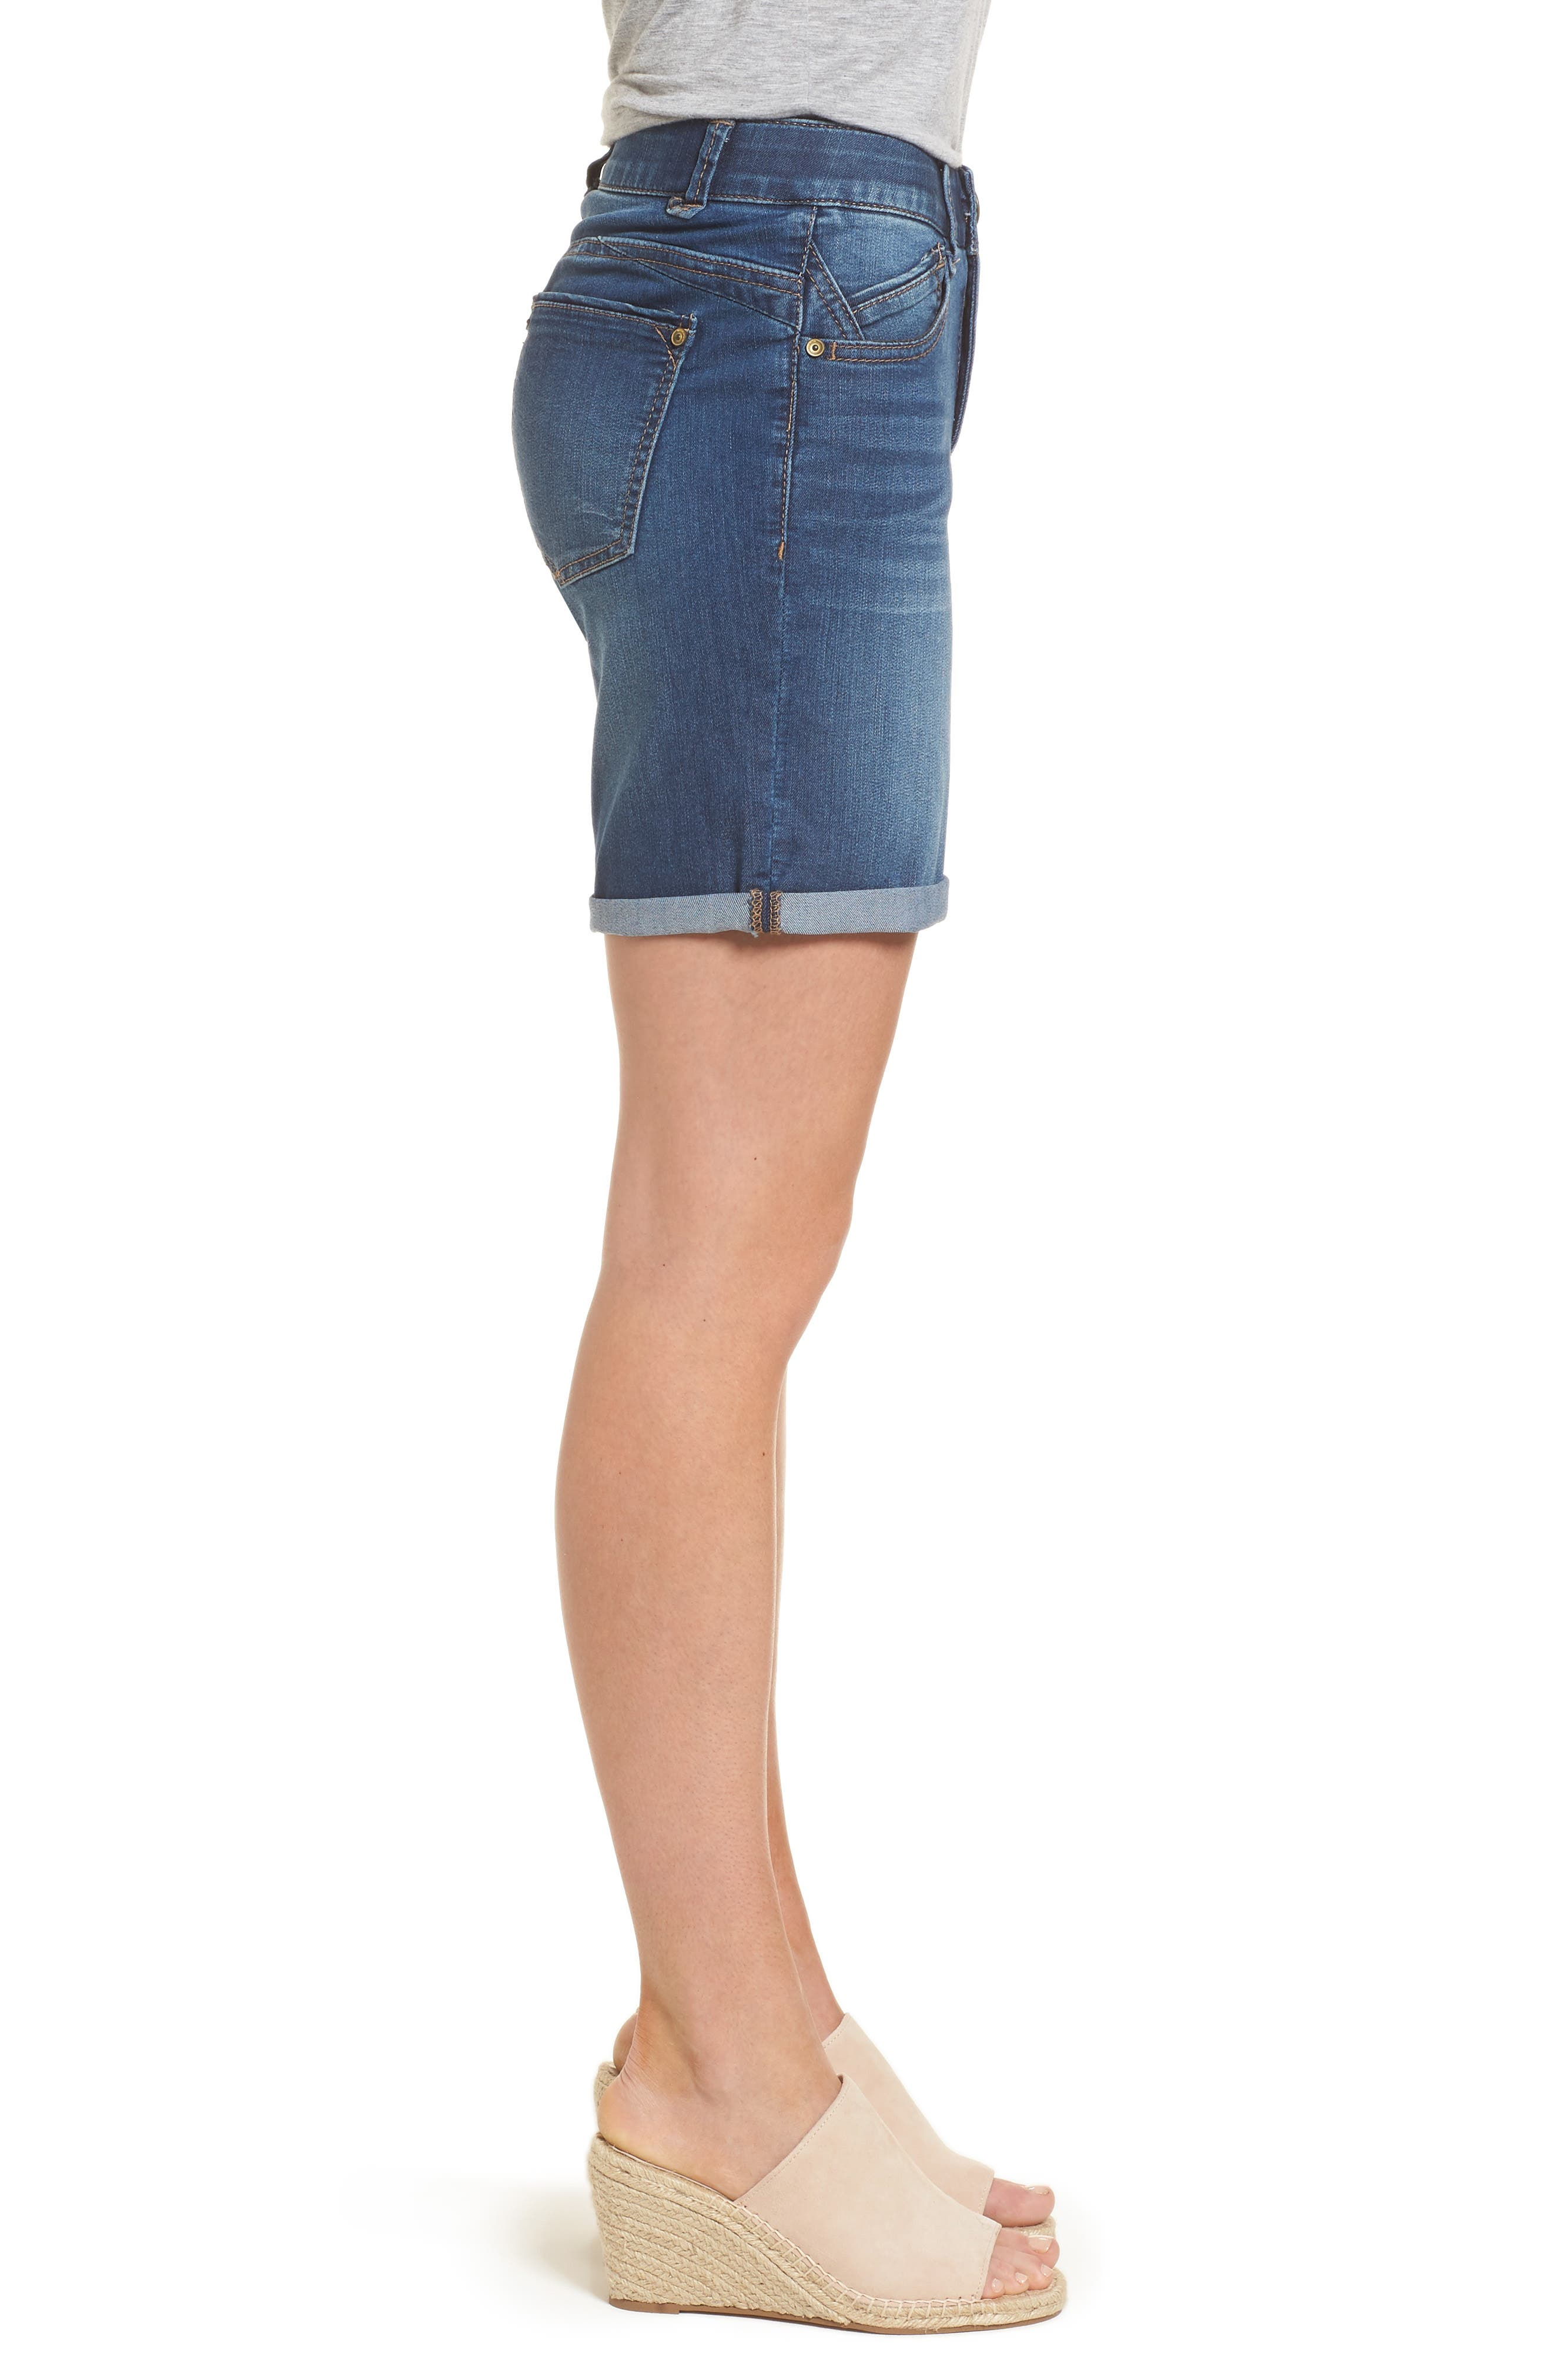 Ab-solution Cuffed Denim Shorts,                             Alternate thumbnail 3, color,                             Blue